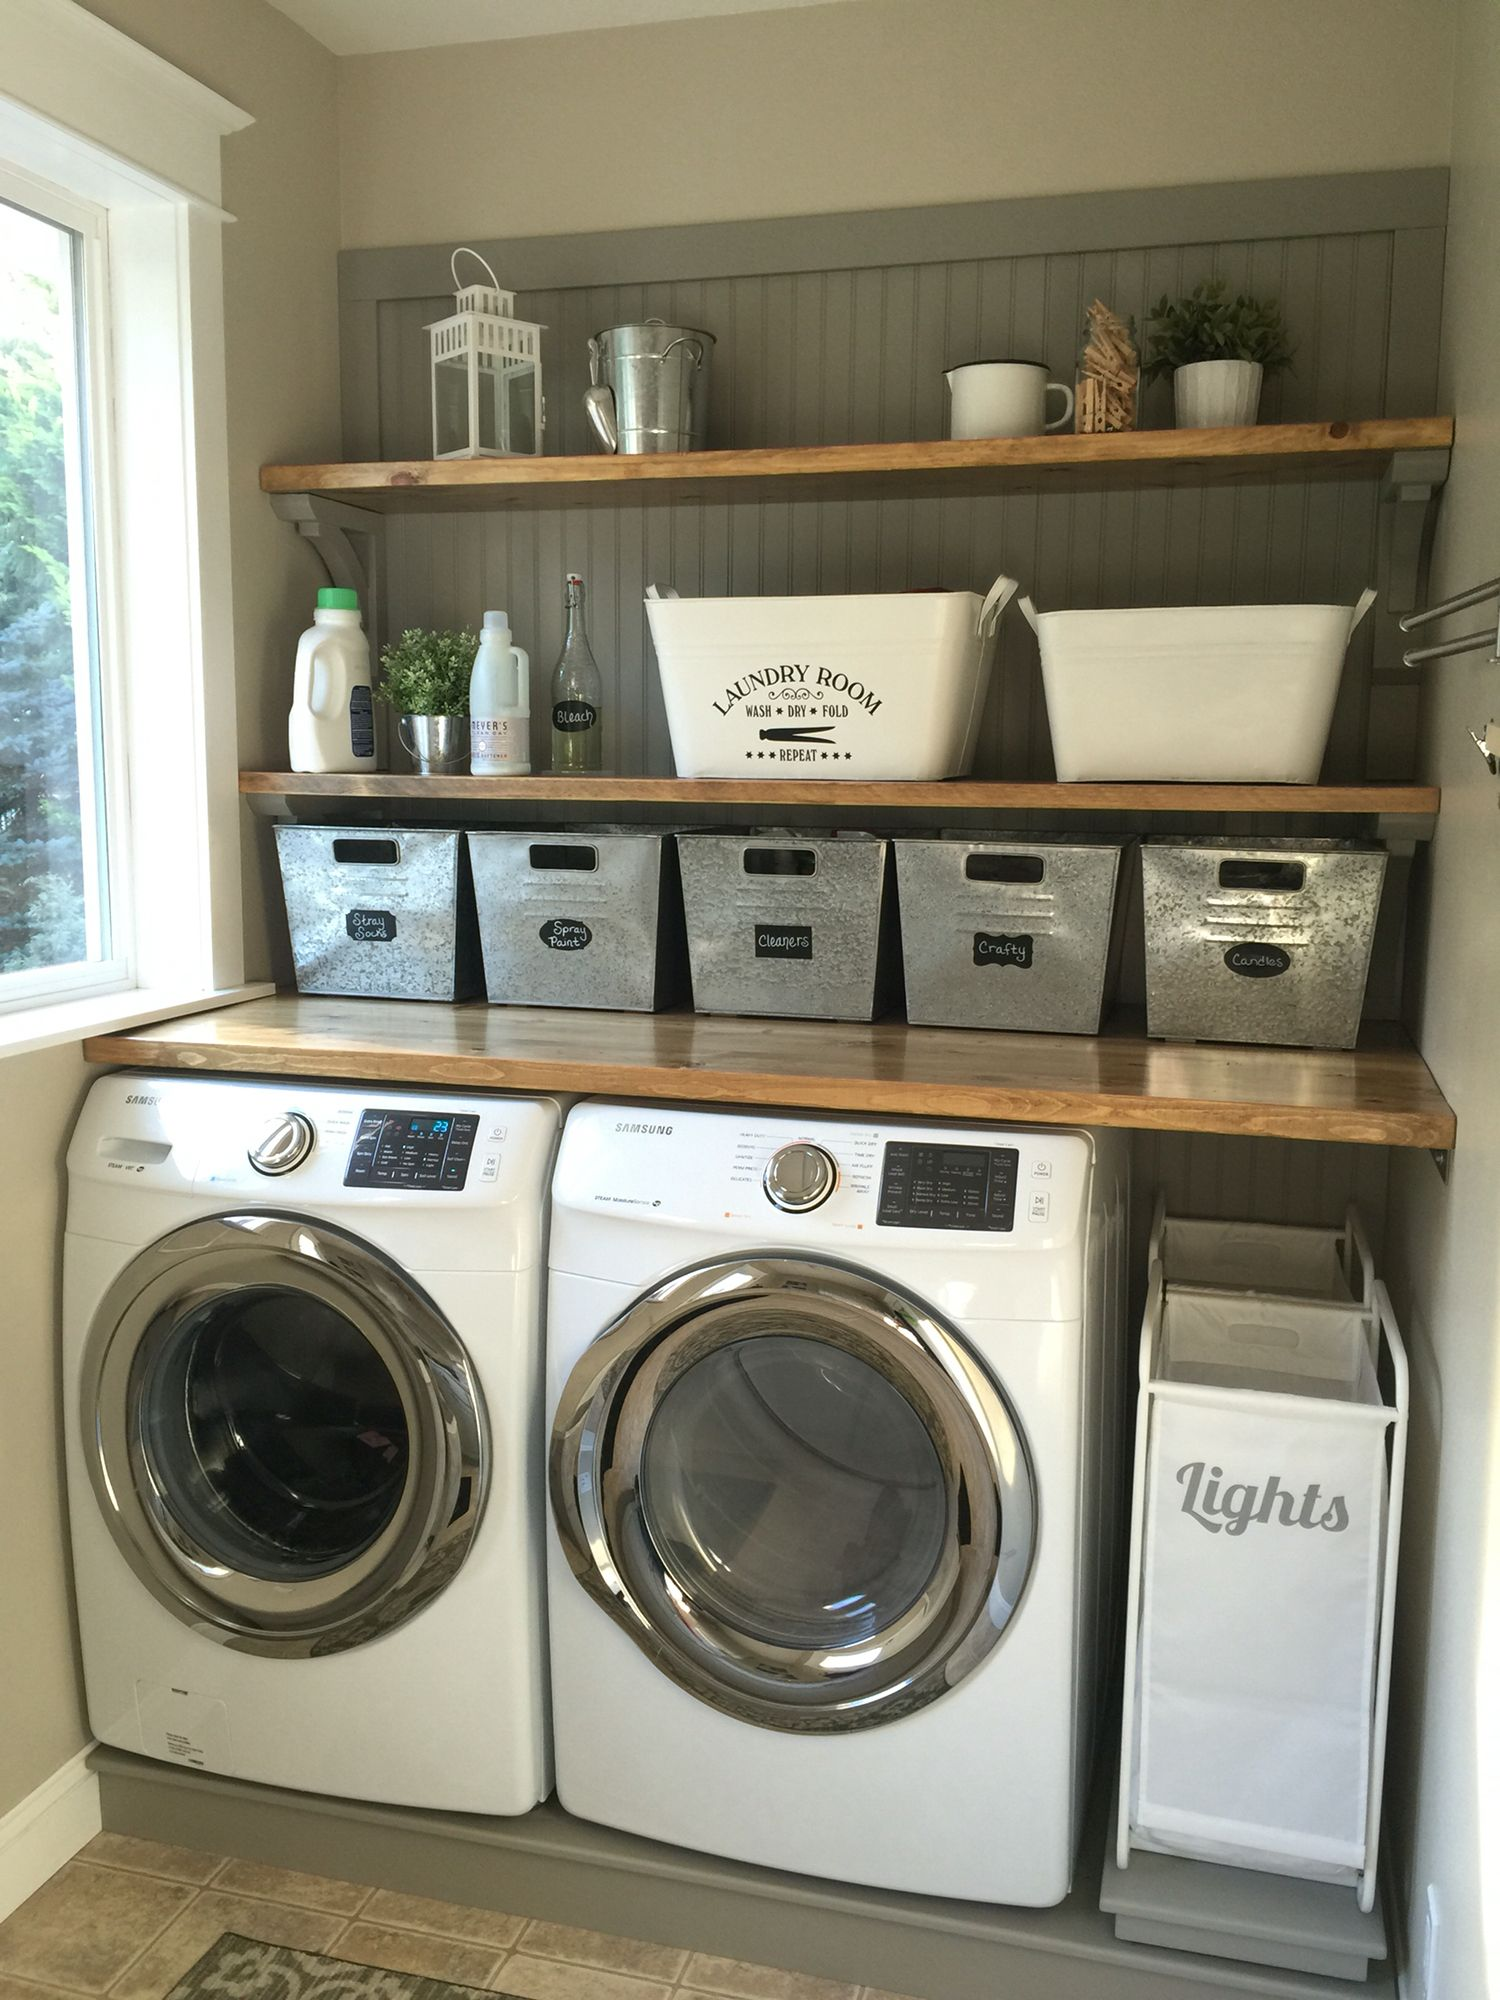 Laundry Room Ideas - Laundry room makeover. Wood counters Walmart tin totes pull out laundry bins. #laundryroommakeover & Laundry Room Ideas - Laundry room makeover. Wood counters Walmart ...